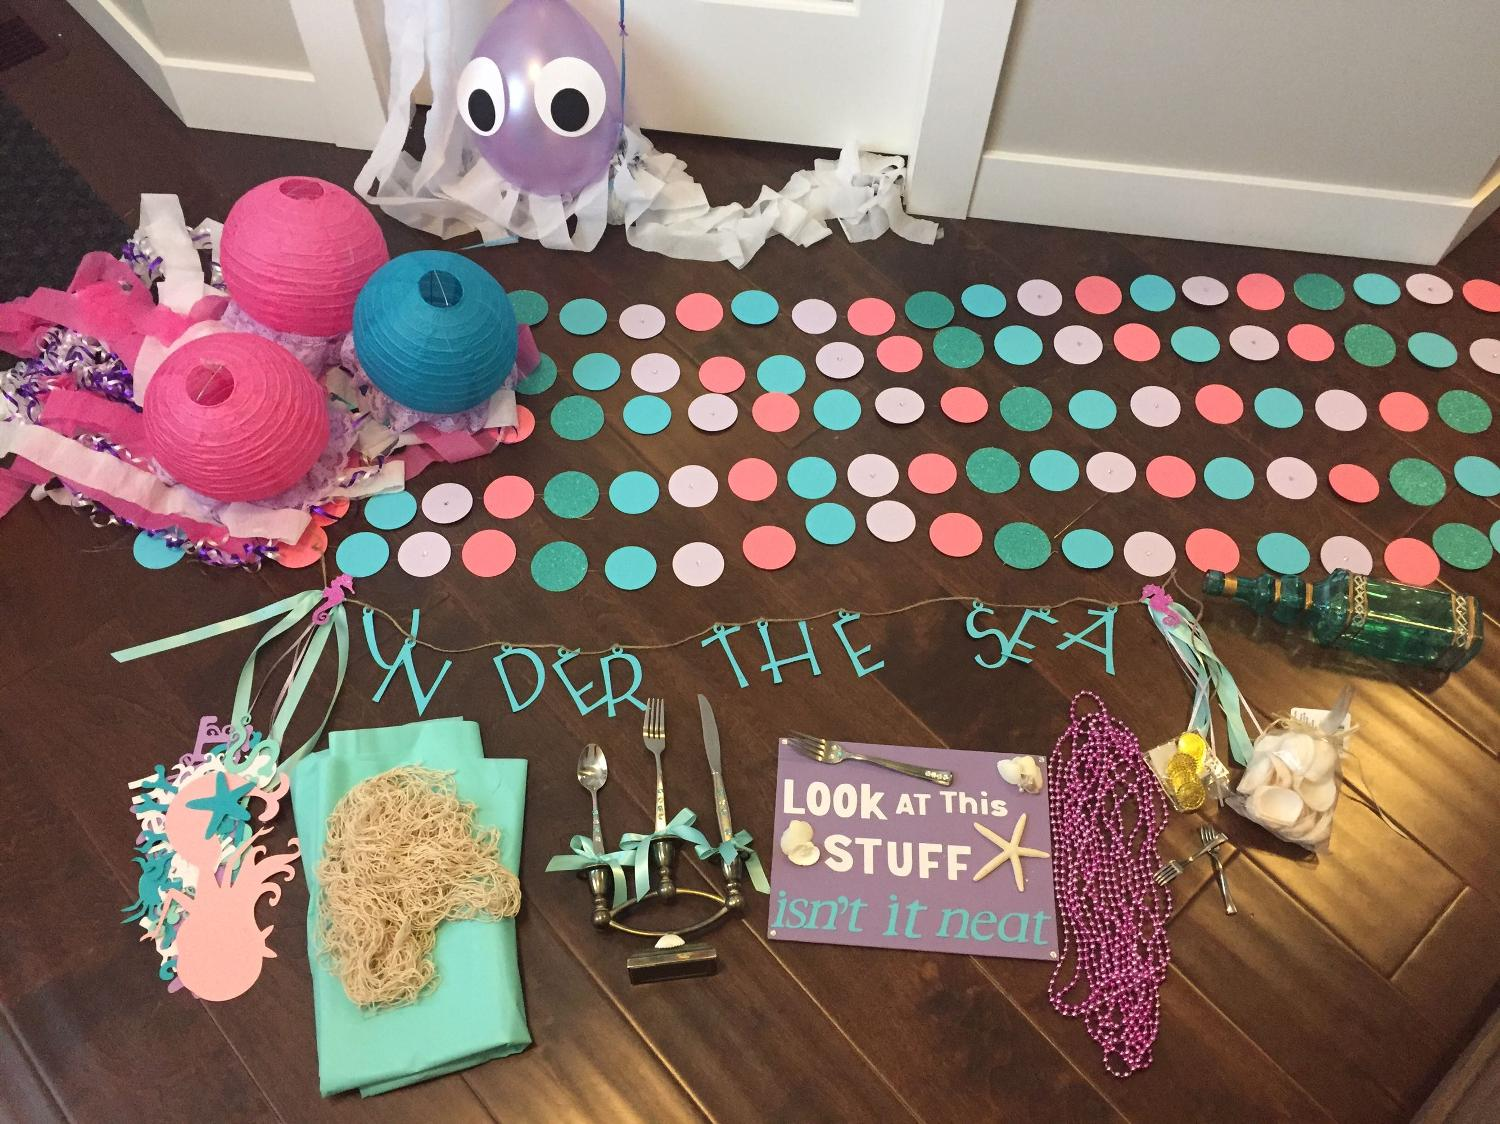 ... Sea Mermaid Party Lot! for sale in Victoria, British Columbia for 2017